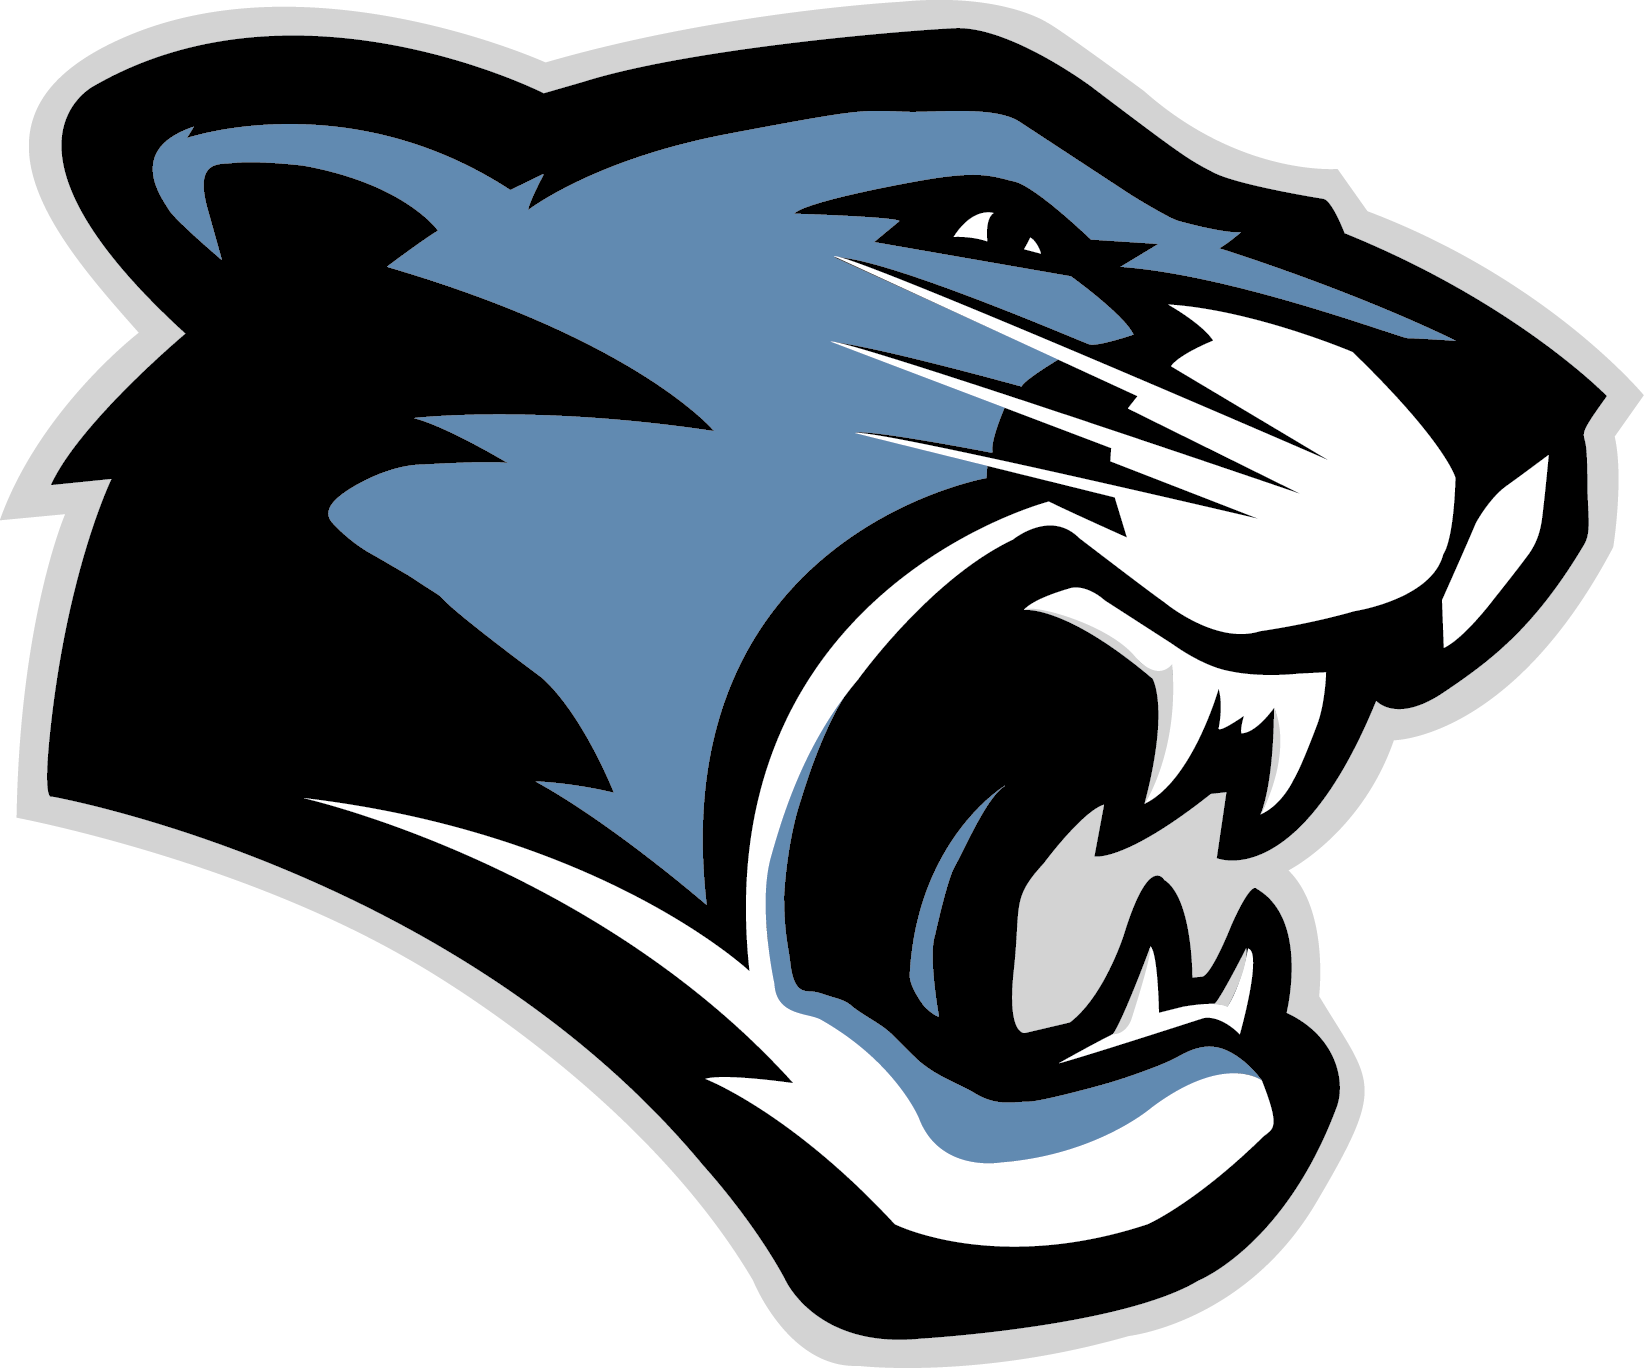 Panther clipart nfl. The best logos in